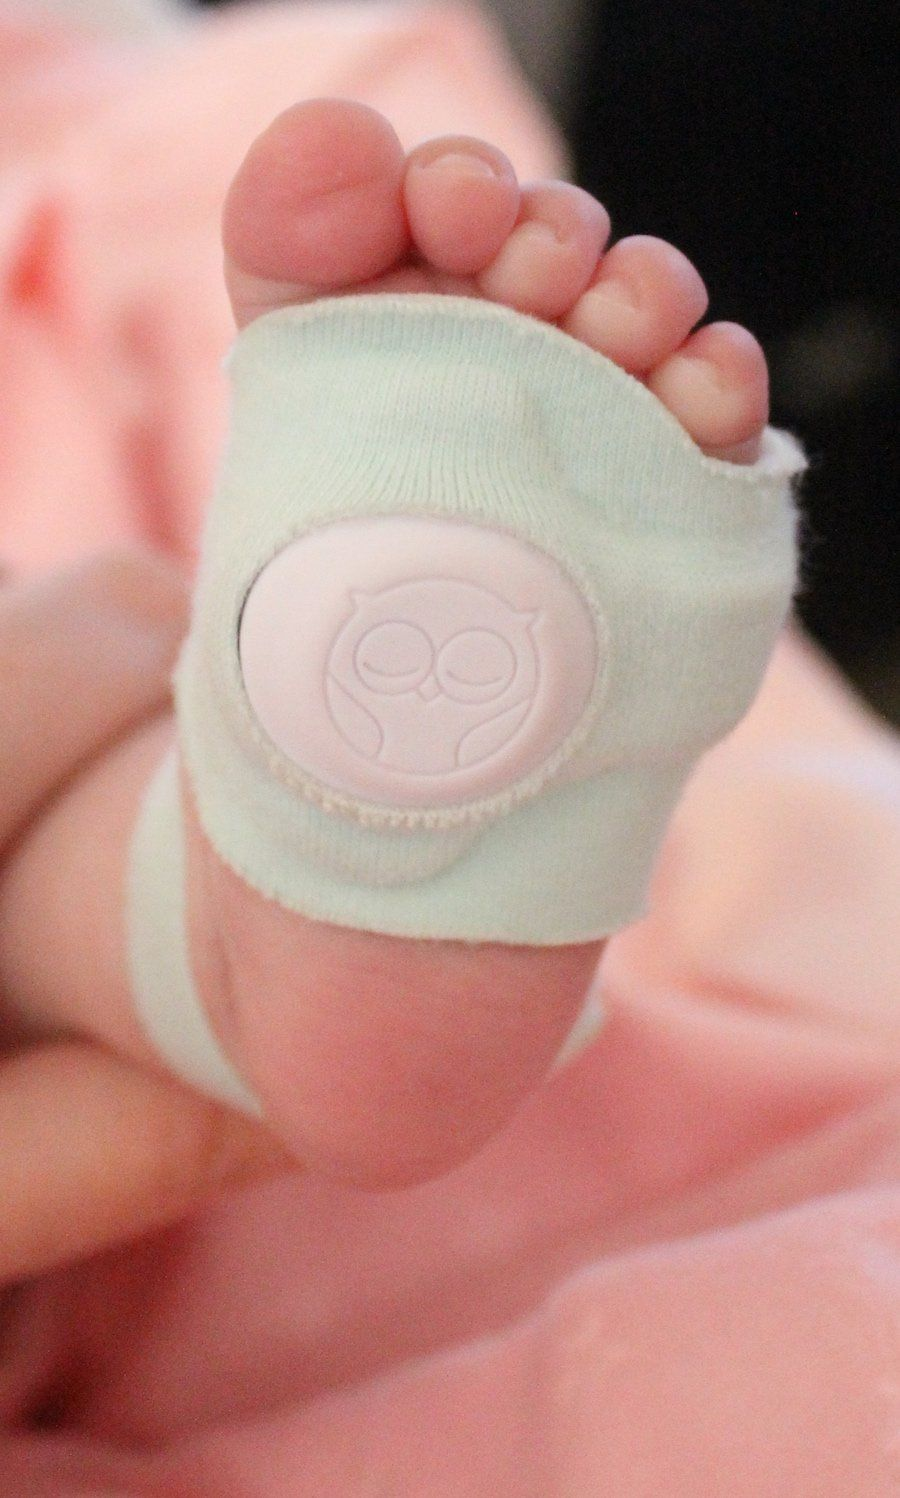 Baby Products that Allow Better Sleep for Parents #babyproducts #musthavebabyproduct #newborngifts